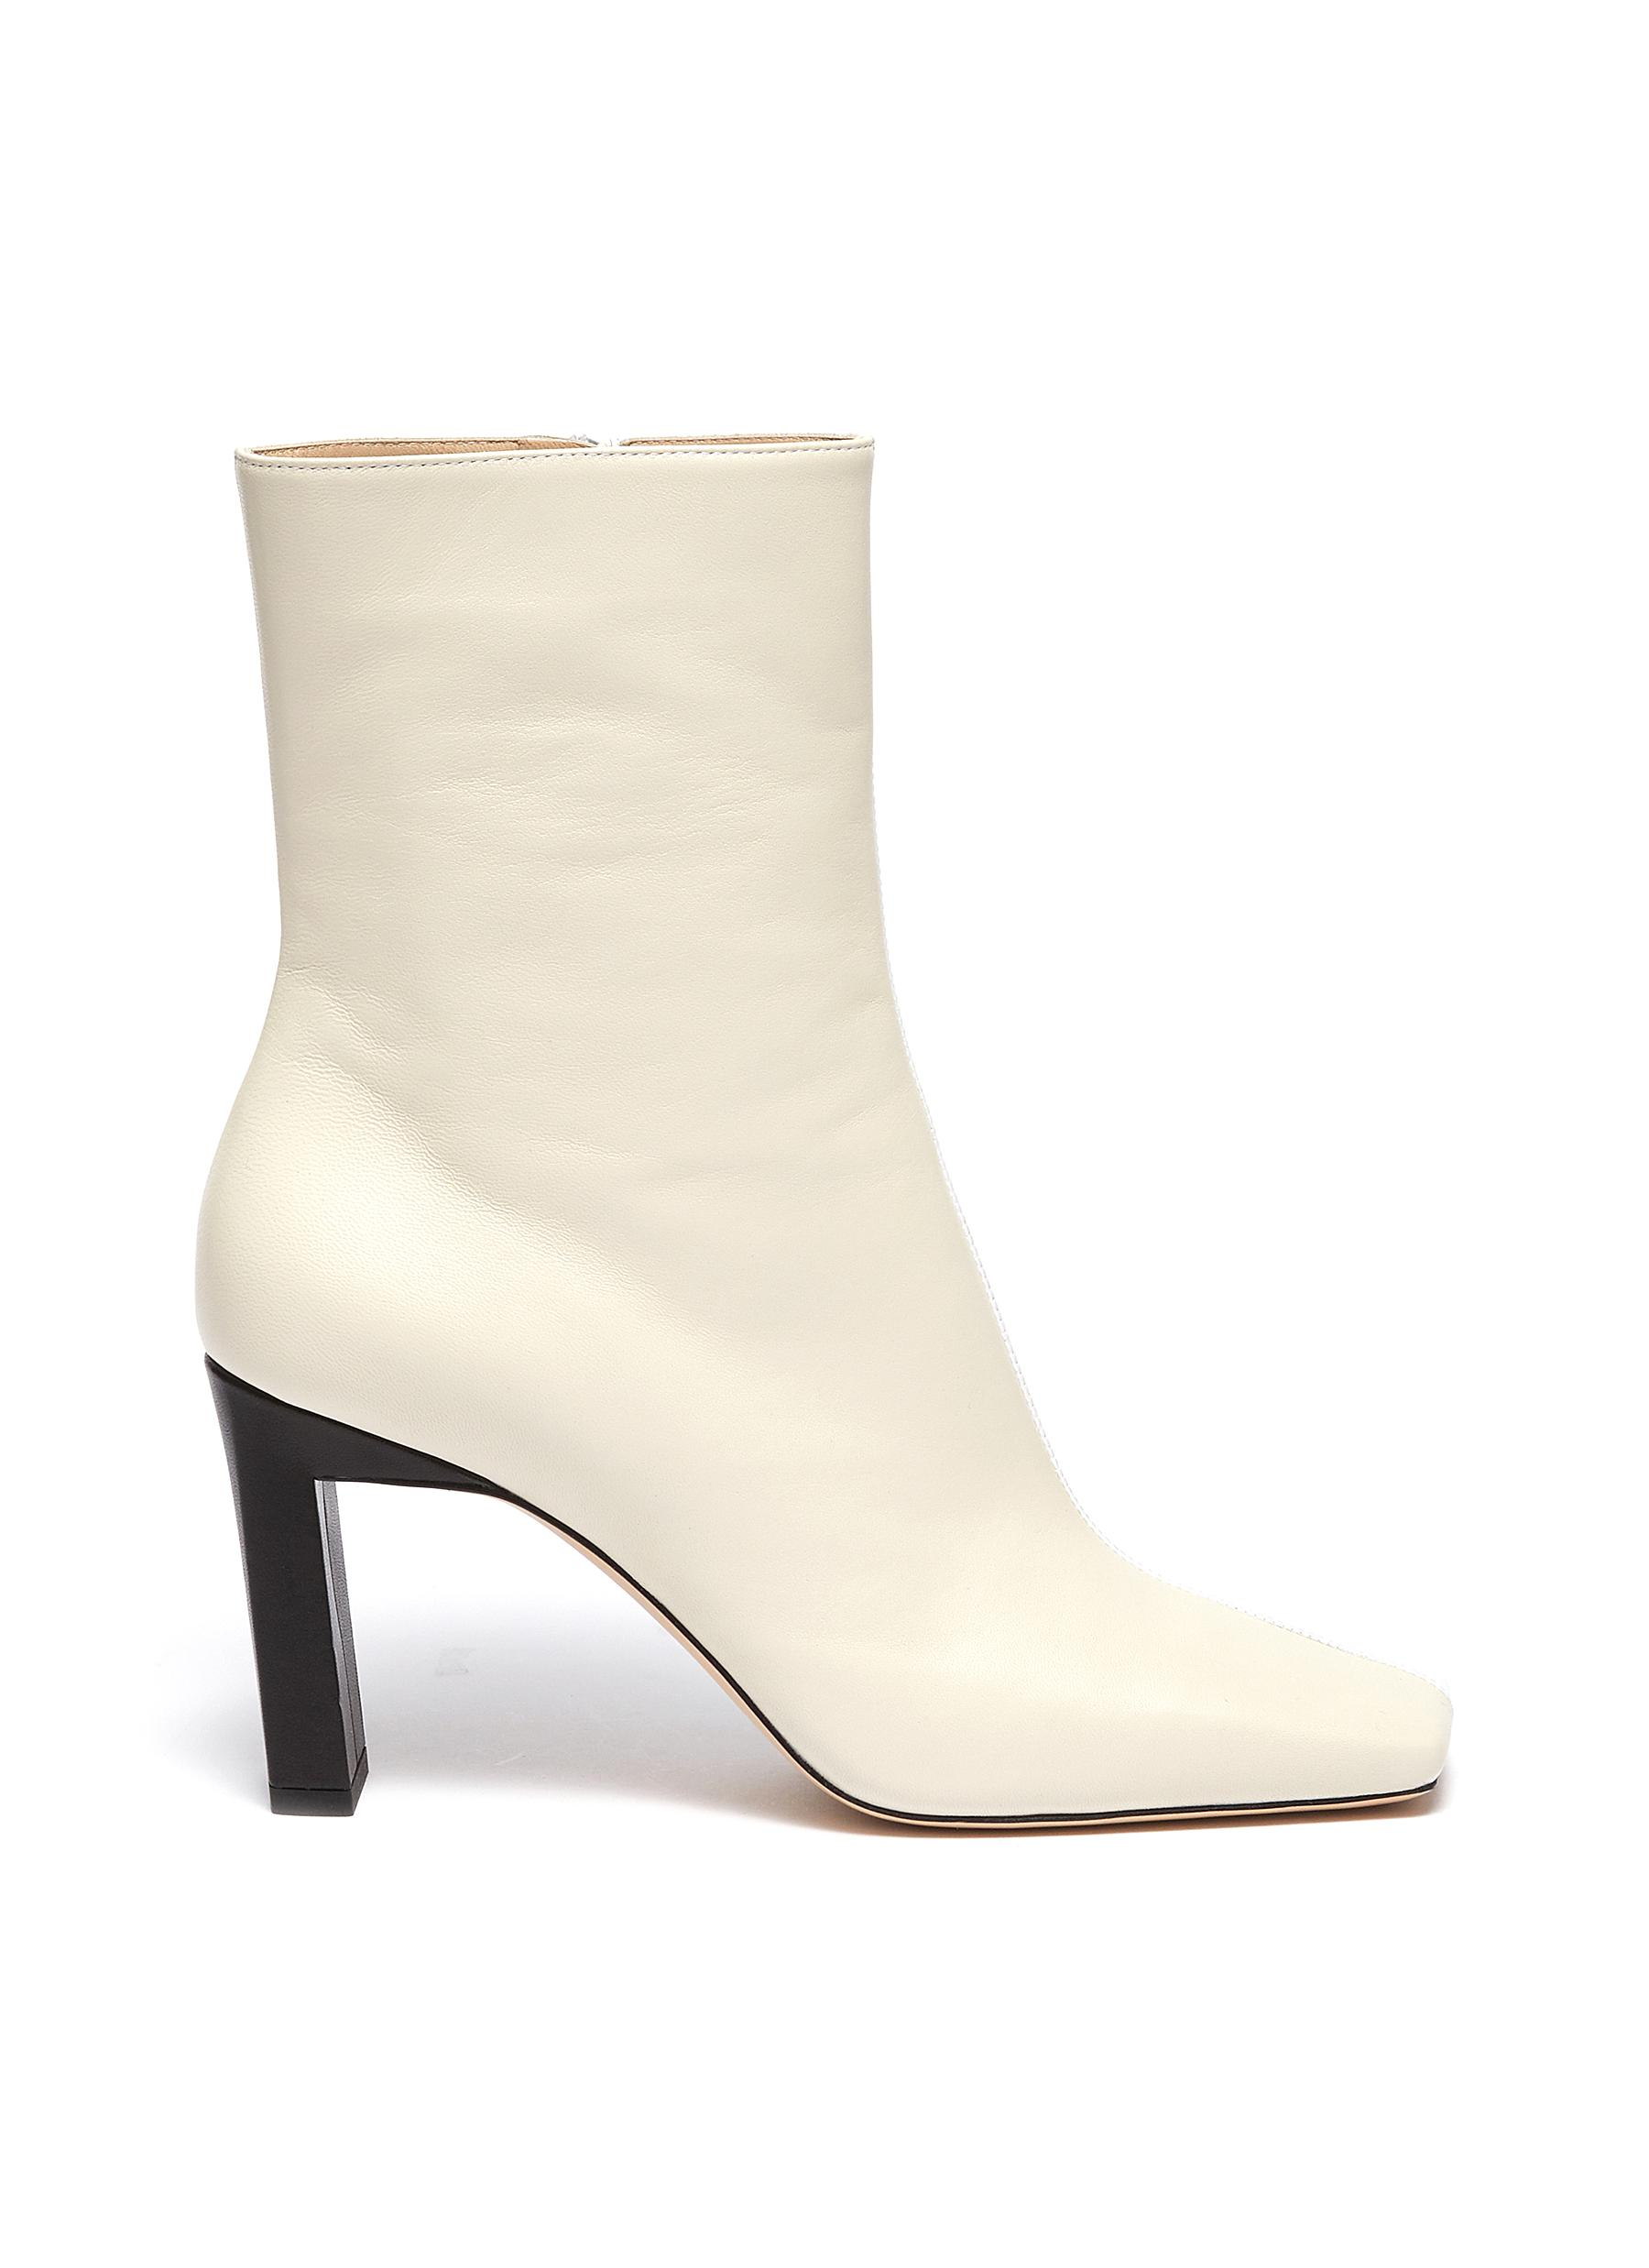 shop Wandler 'Isa' square toe two tone boots online